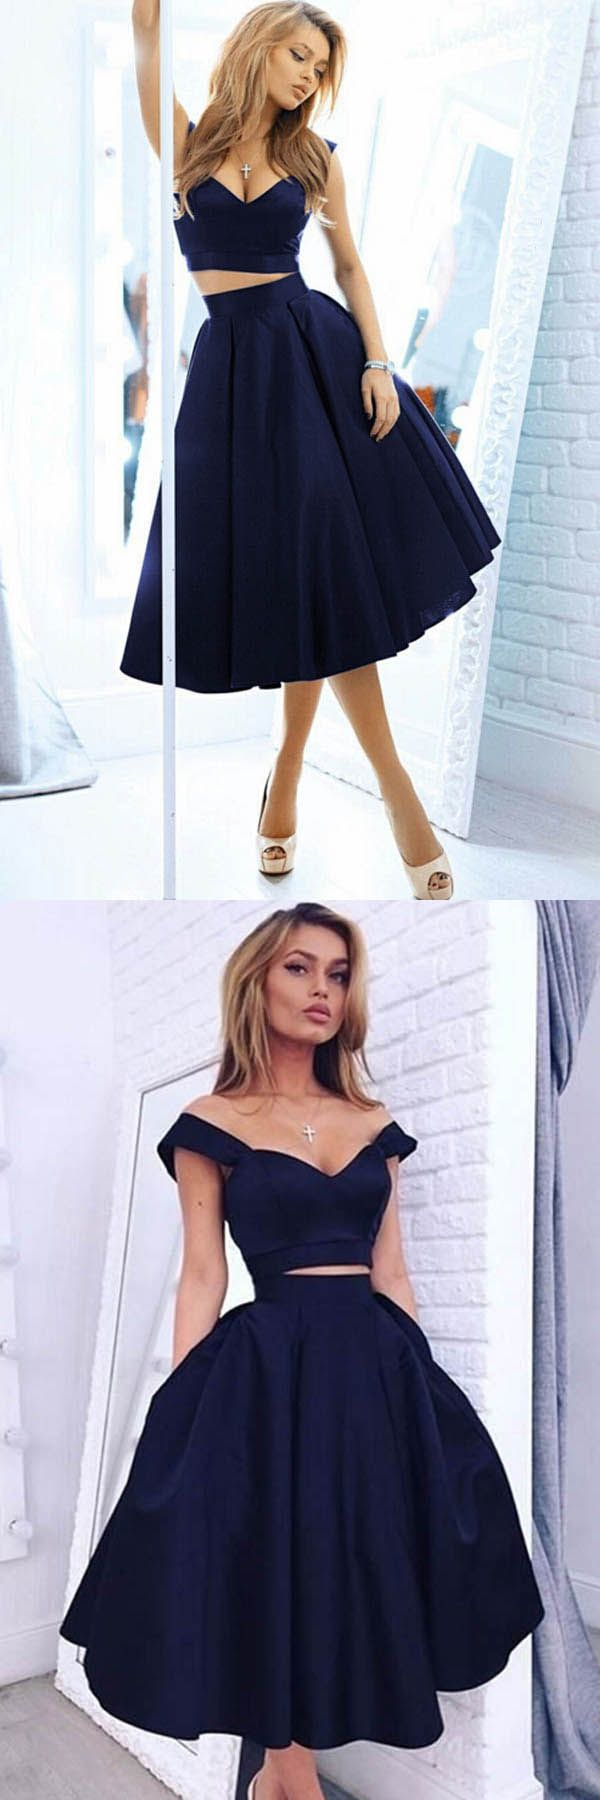 Cheap excellent prom dresses chic off the shoulder navy blue